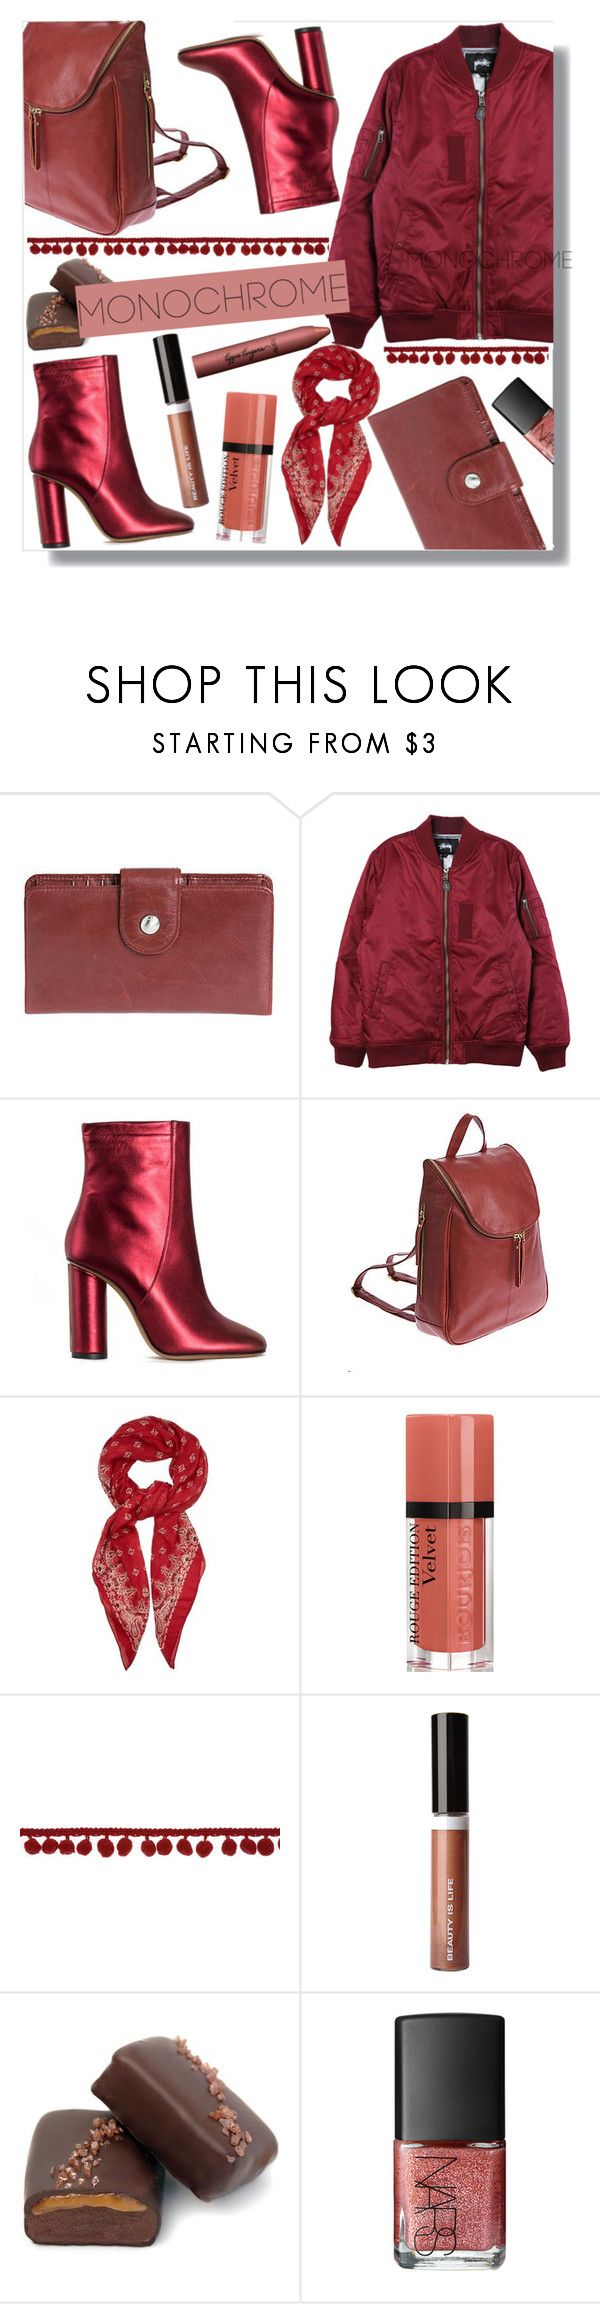 """burgundy monochrome"" by monykhaled ❤ liked on Polyvore featuring HOBO, Stussy, Jill Stuart, Overland Sheepskin Co., Yves Saint Laurent, Bourjois, Beauty Is Life, John Kelly Chocolates, NARS Cosmetics and tarte"